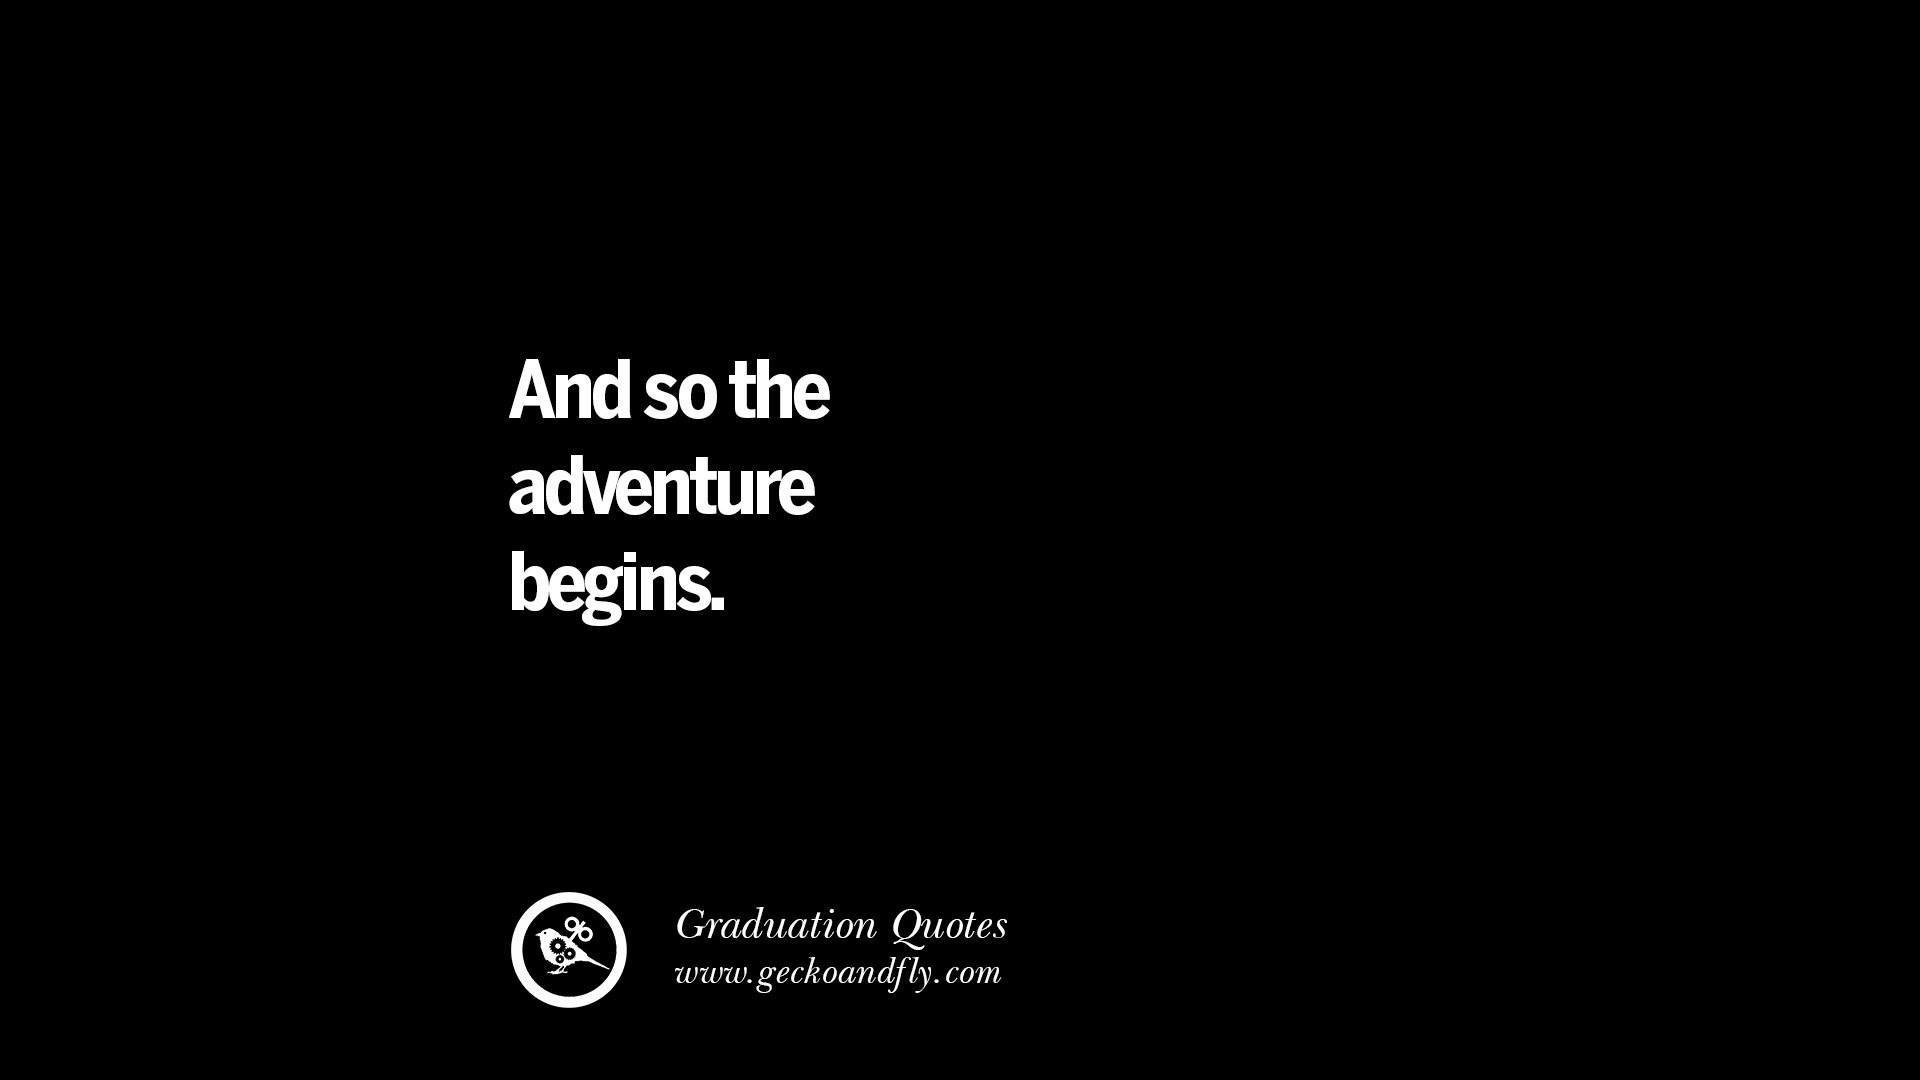 30 Cool High School Graduation Quotes From: 30 Inspirational Quotes On Graduation For High School And